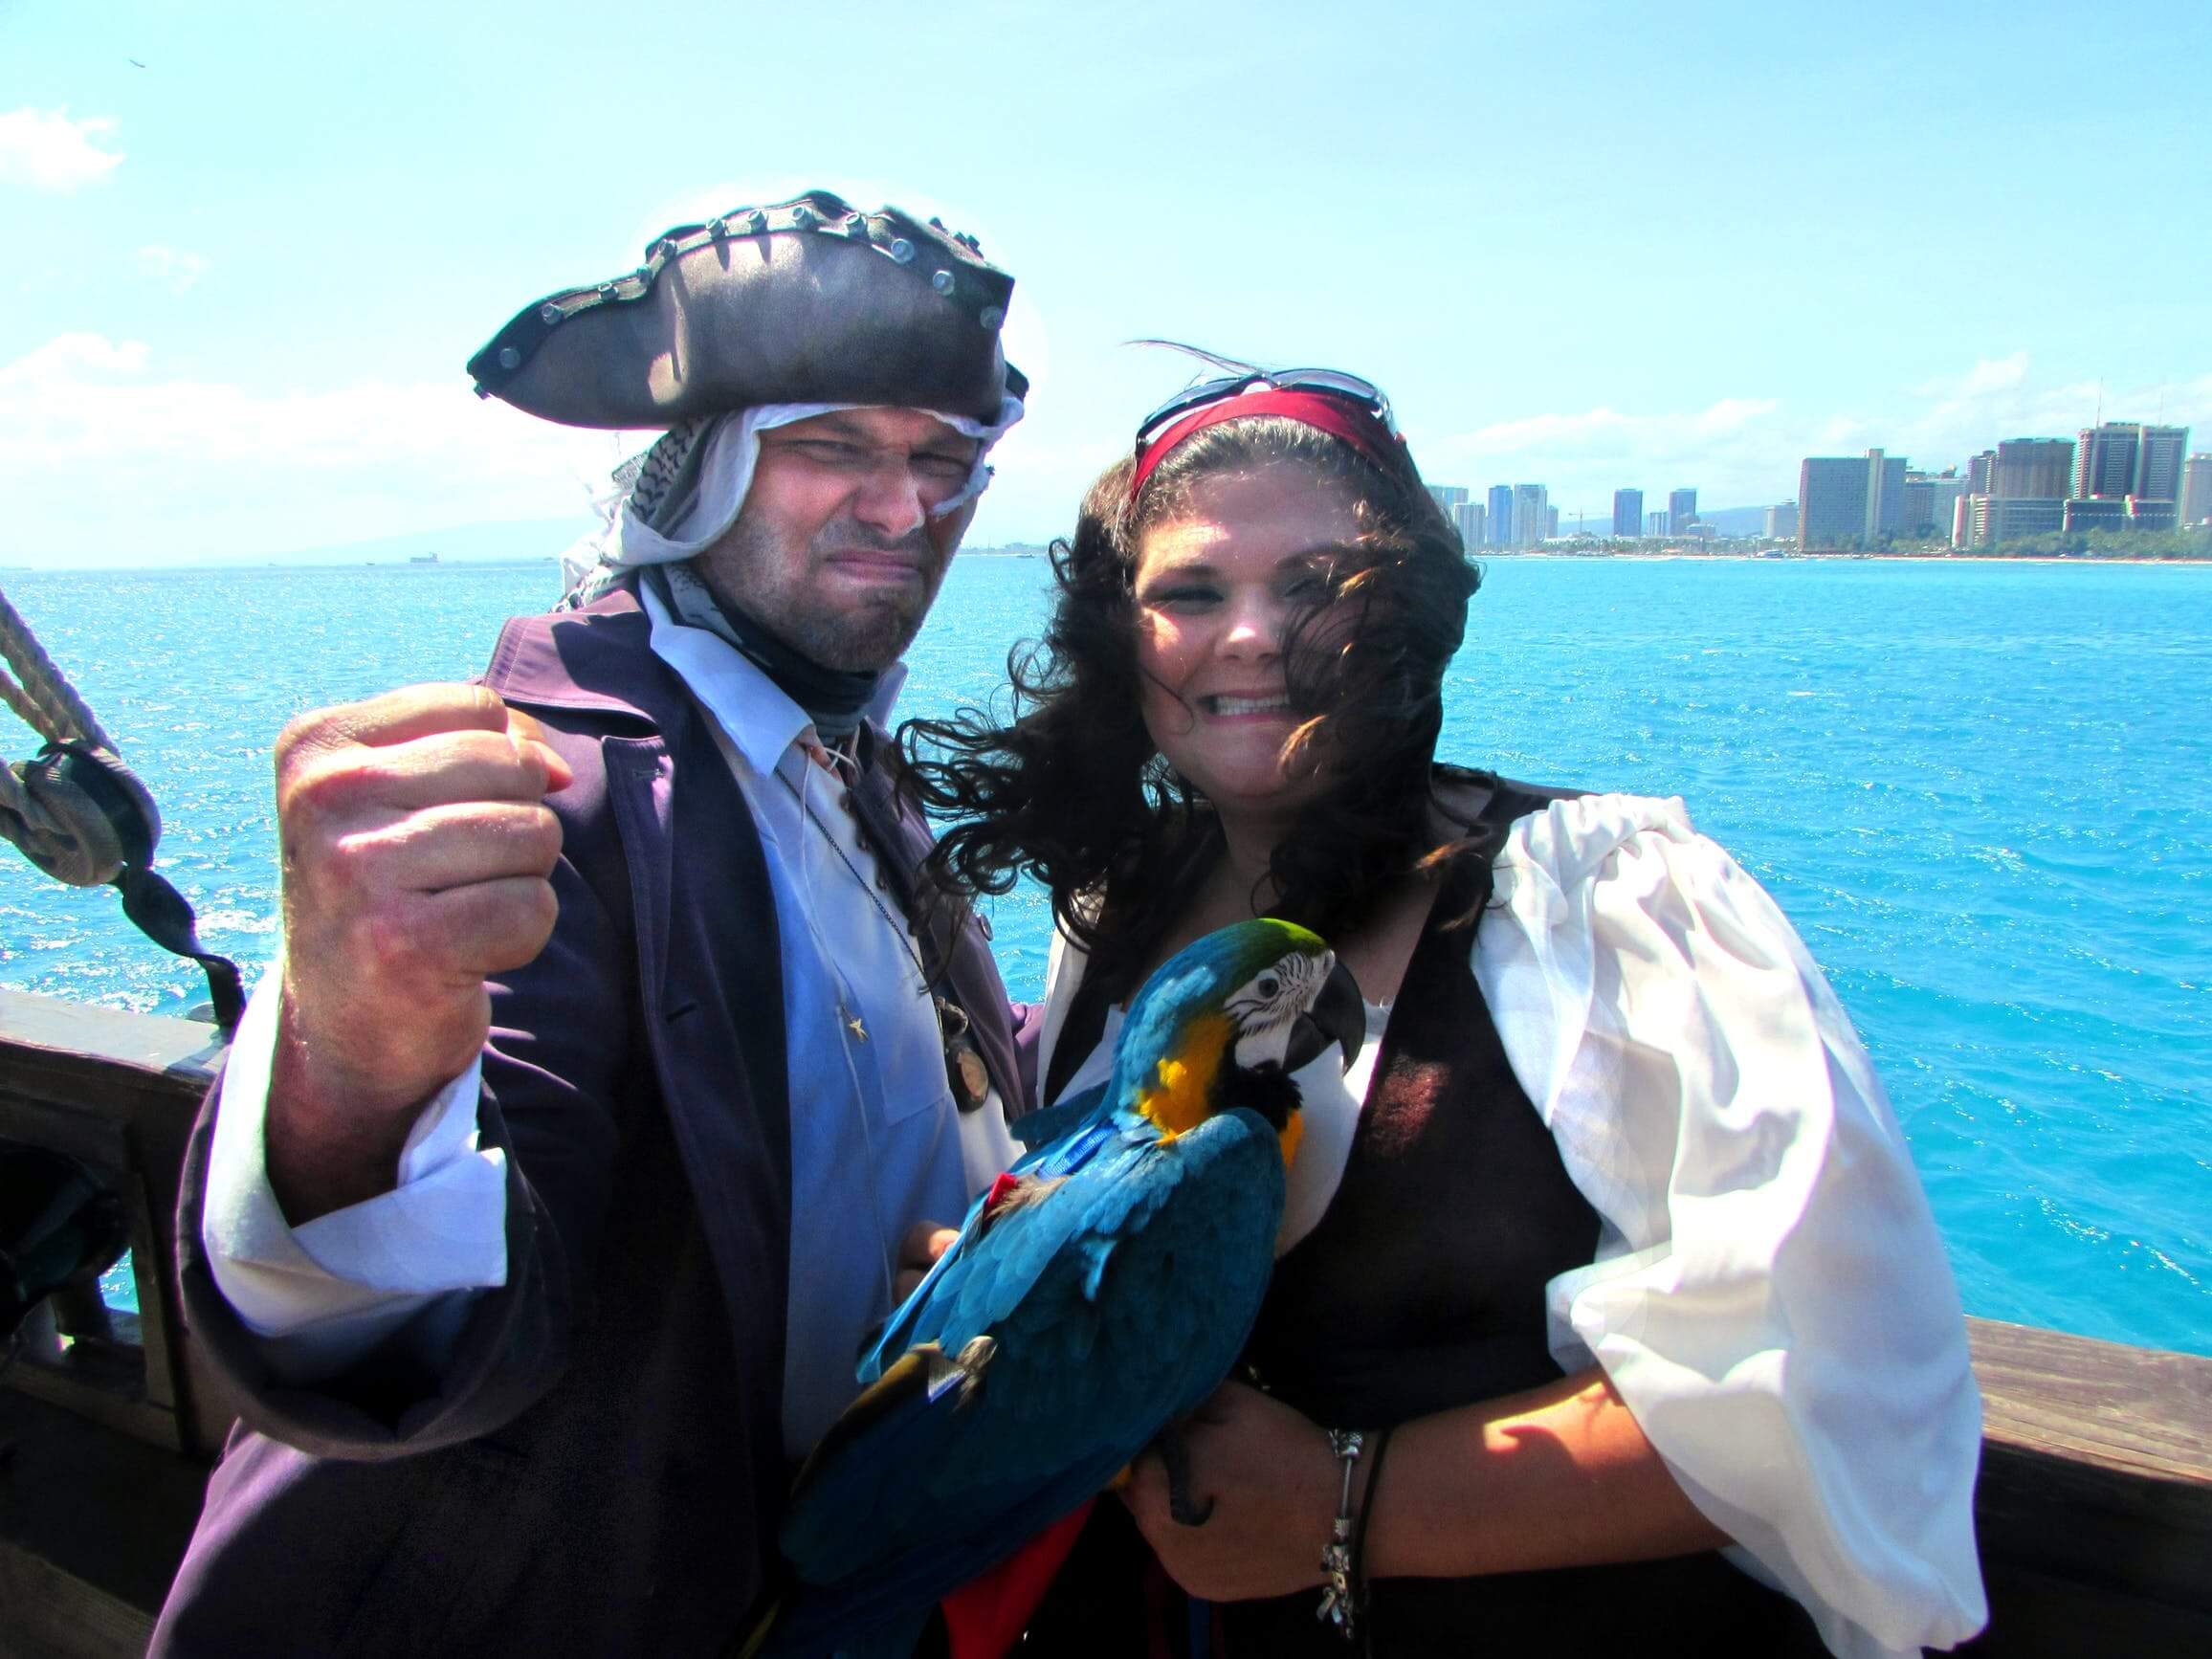 Pirates with Parrot